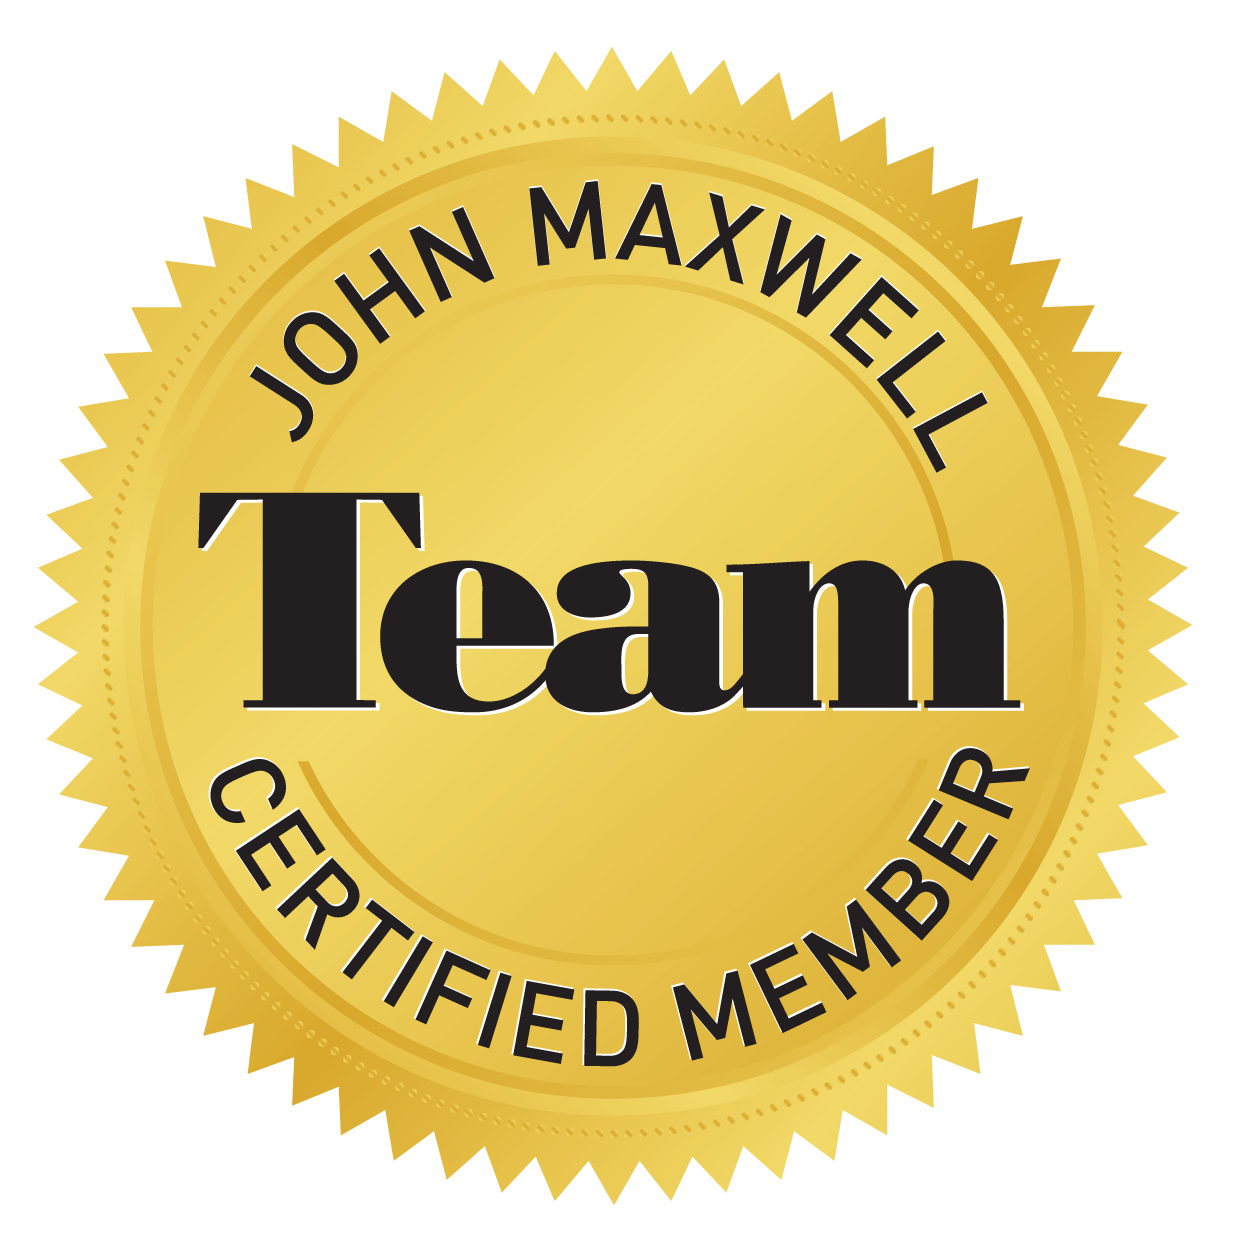 Don Levonius, M.A. is a John Maxwell Team Certified Speaker